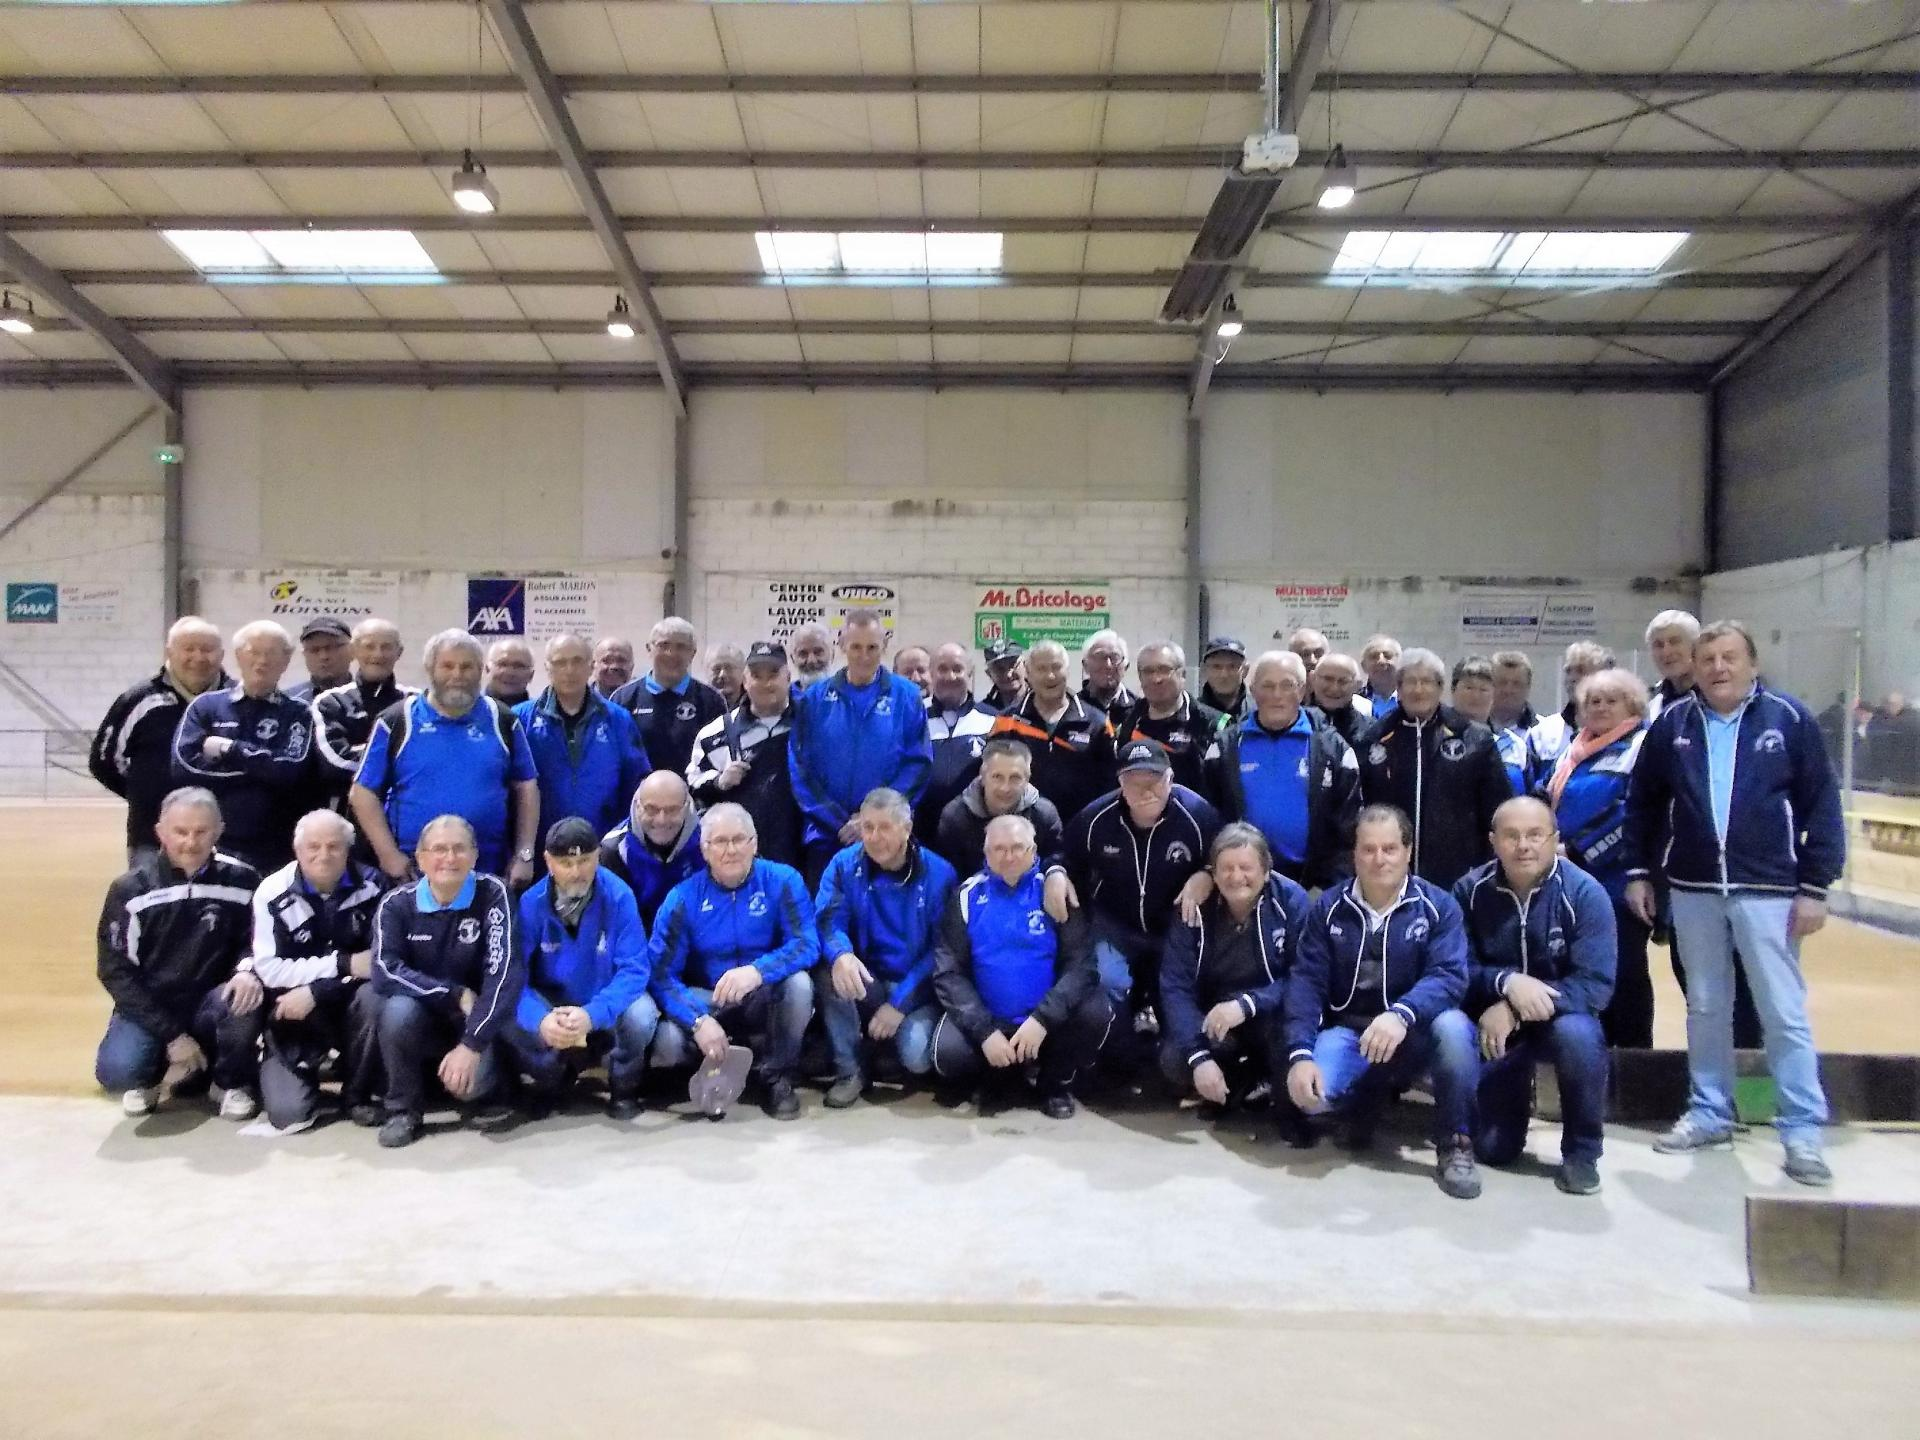 Rencontre veterans 3 a paray